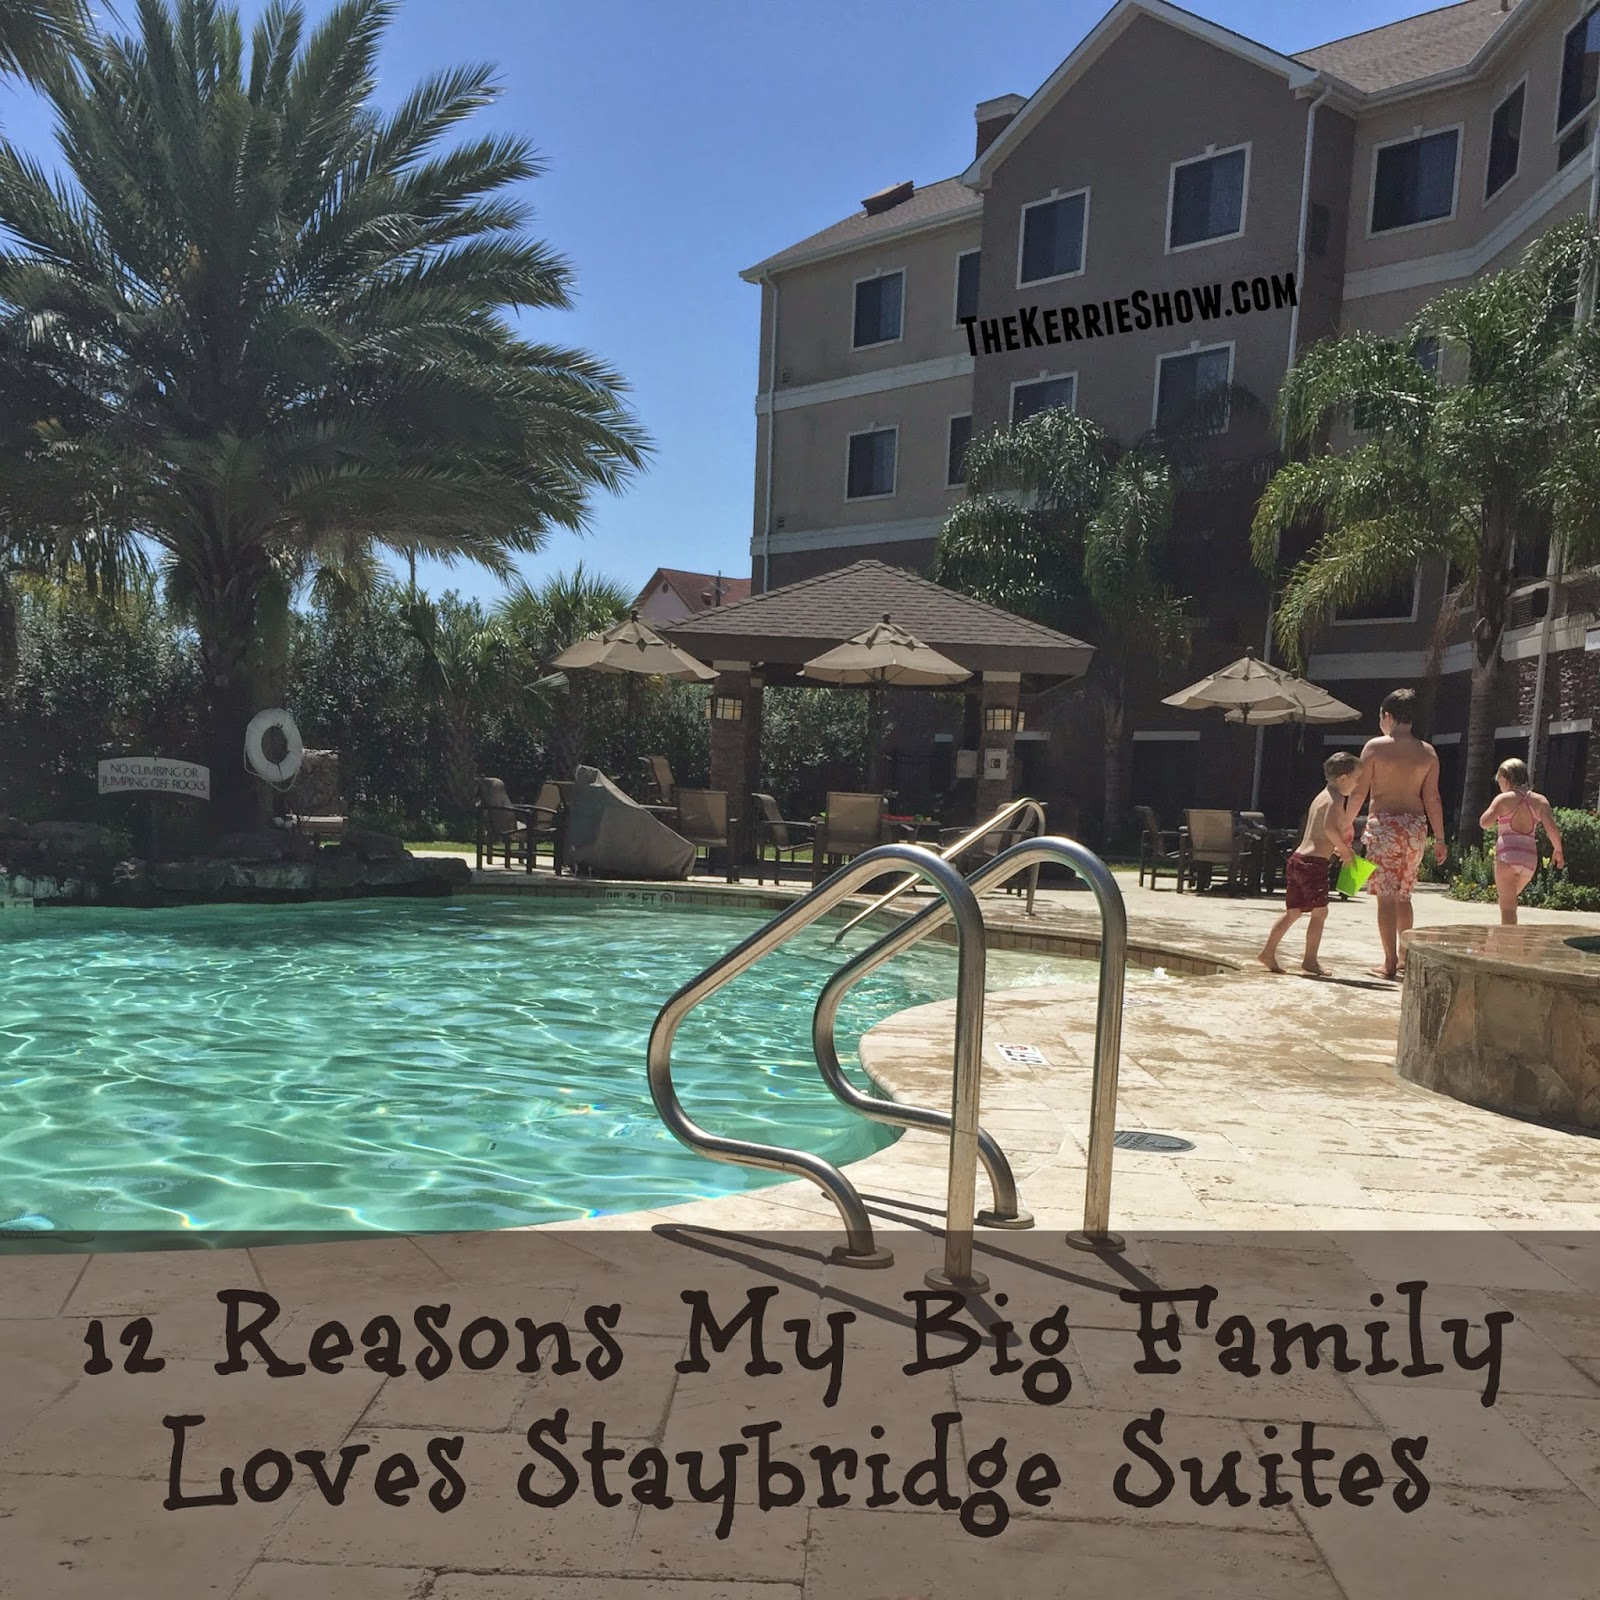 The Kerrie Show: 12 Reasons Why My Big Family Loves